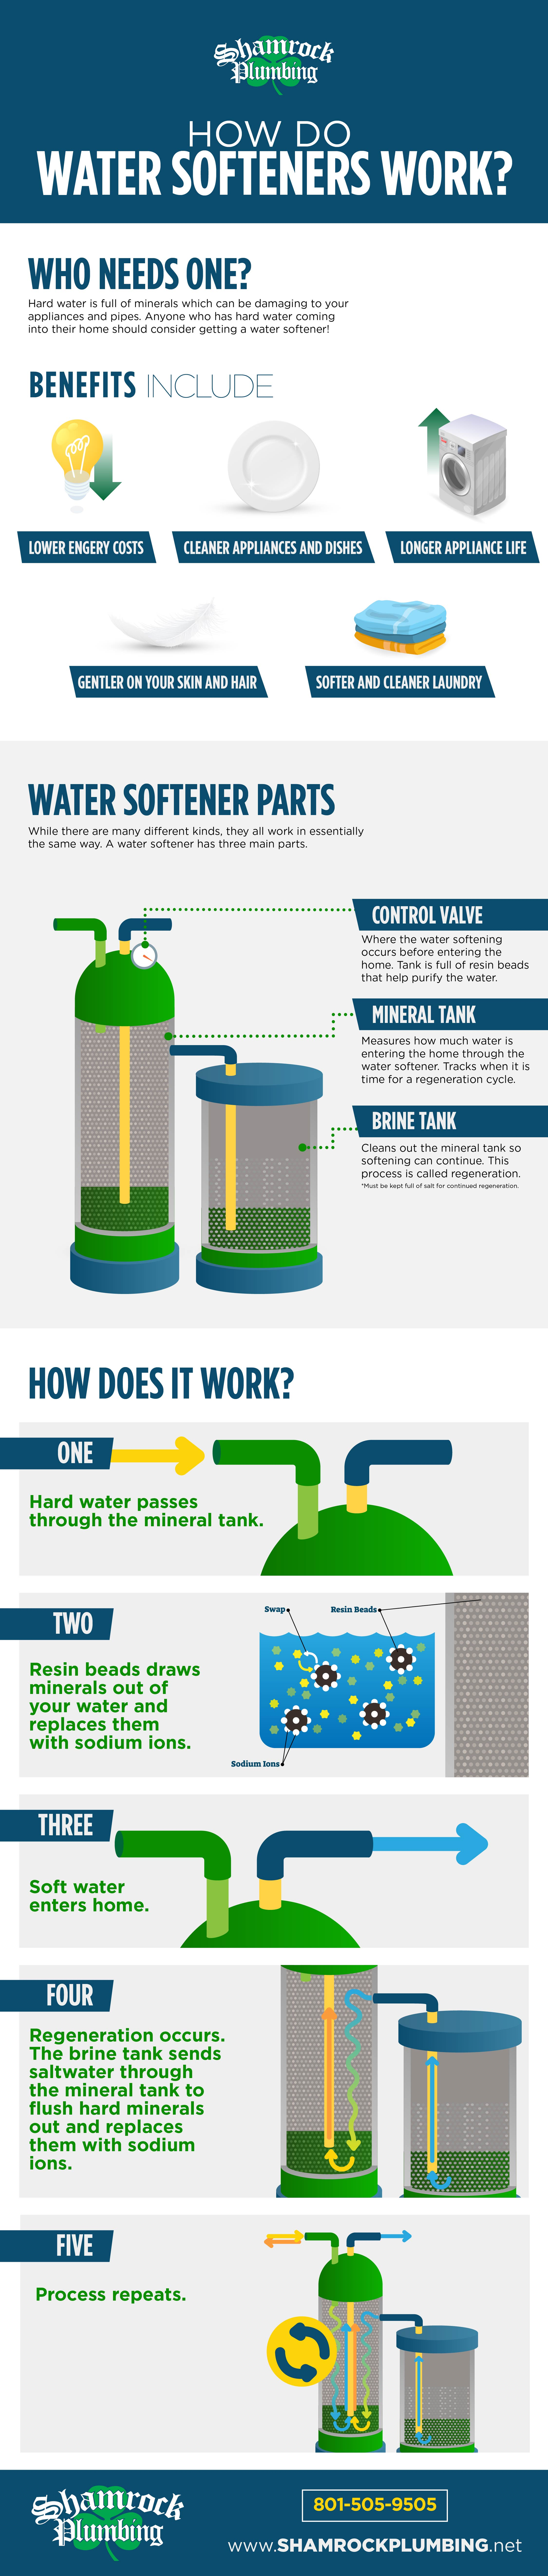 infographic of how a water softener works